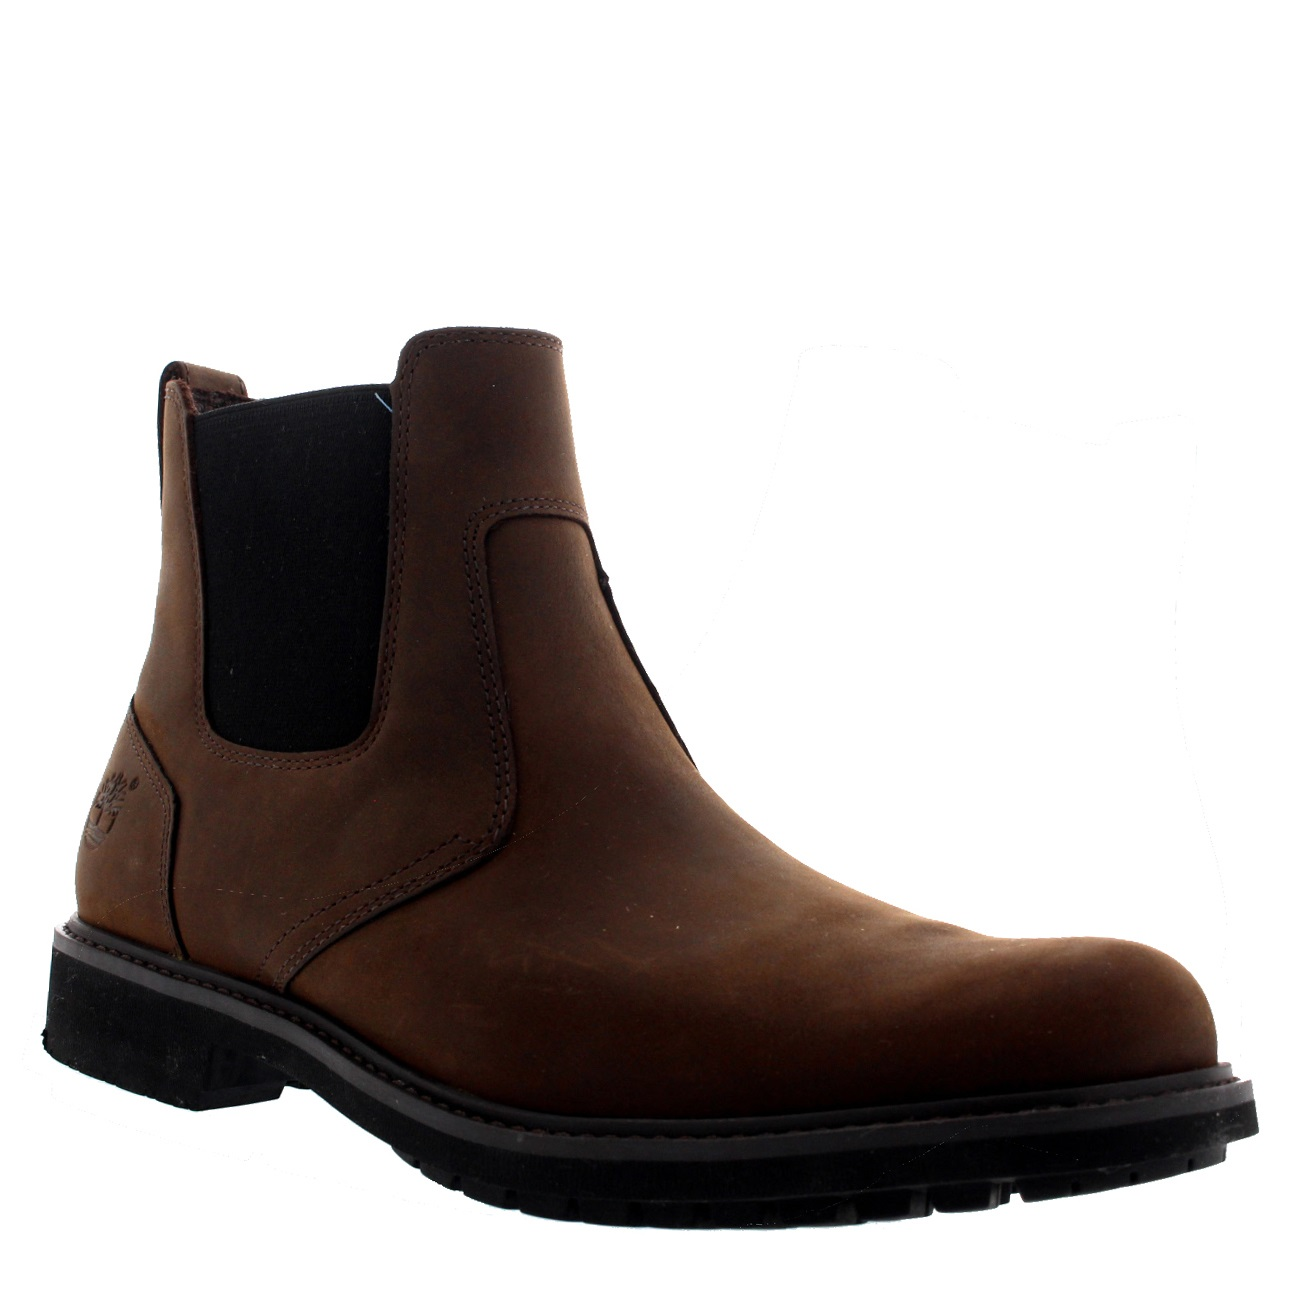 The Chelsea Boot Store is an independent Shoe and Boot store based in Oxfordshire, England. We sell Quality Men's Shoes, Men's Boots and Accessories. We offer Free UK delivery on all footwear.